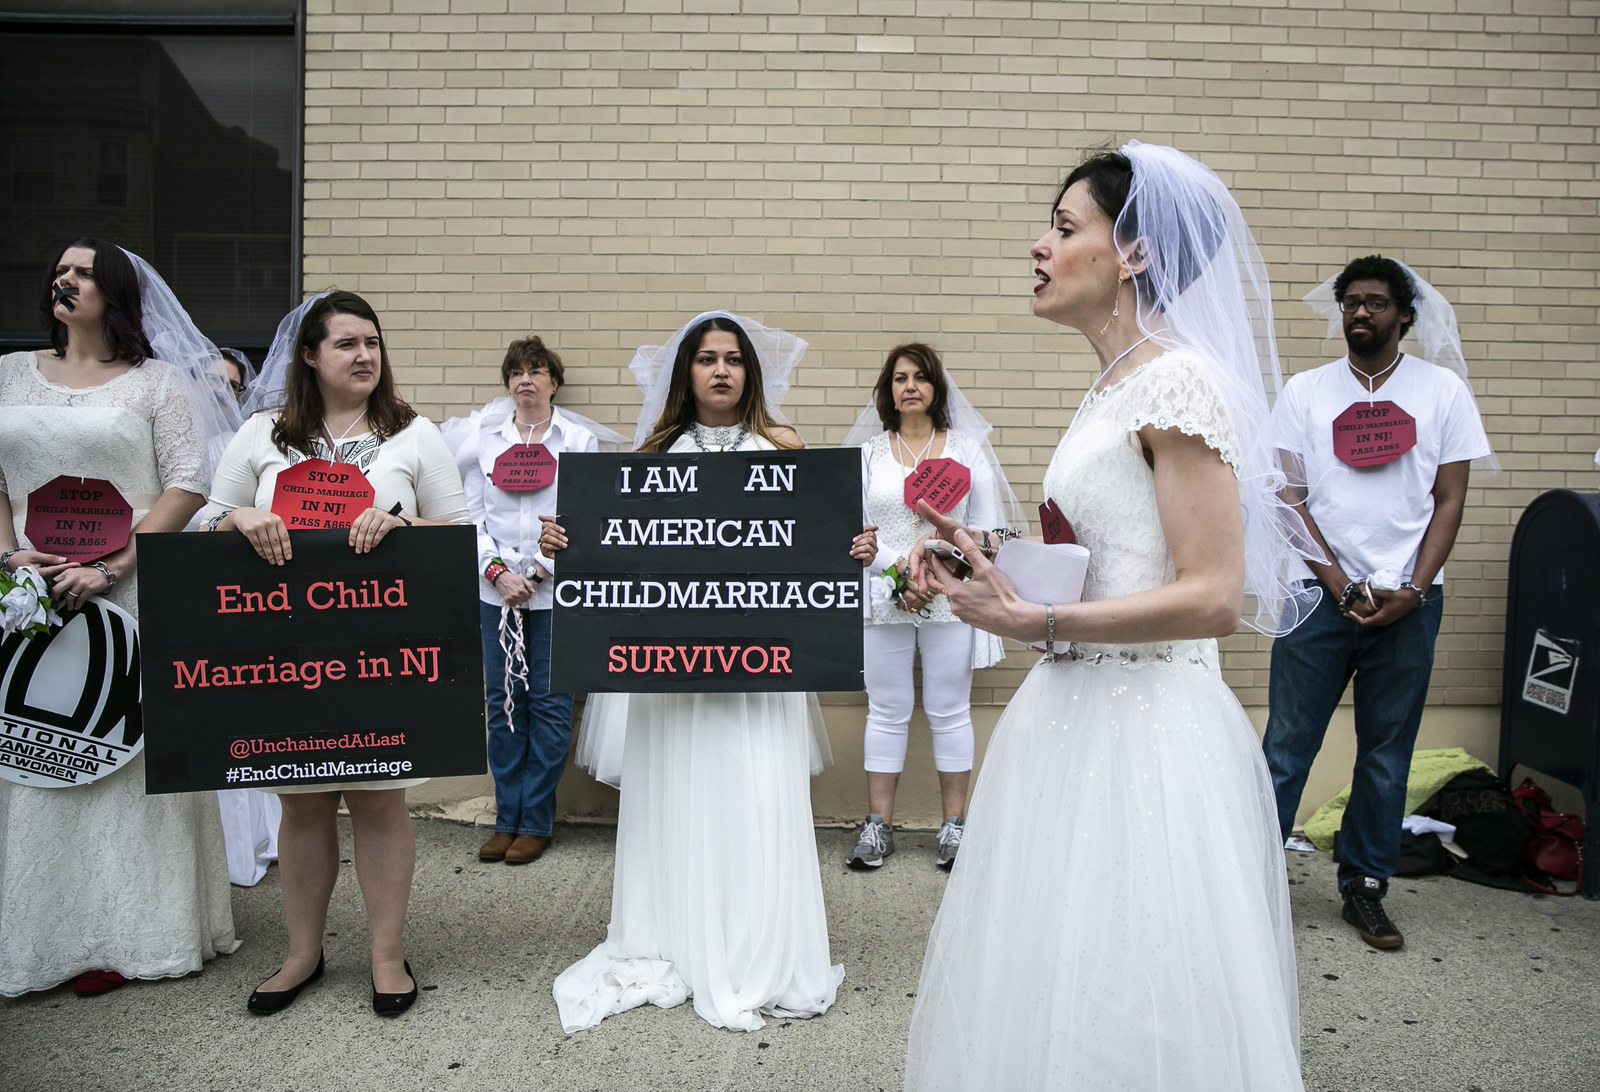 Child Marriage Is Legal In 48 States. These Women Are Asking Why.